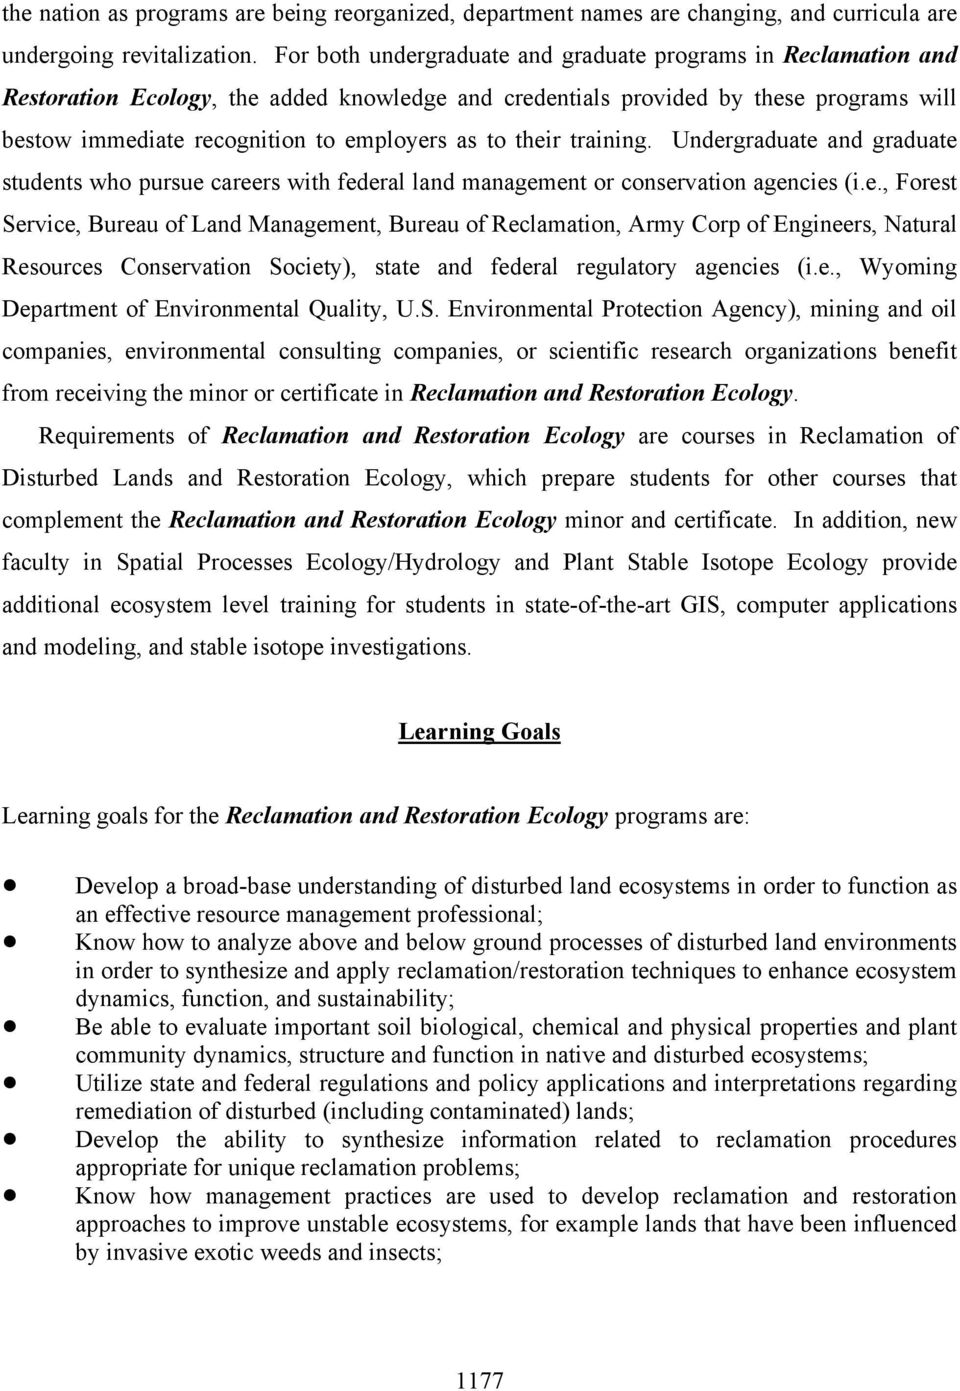 to their training. Undergraduate and graduate students who pursue careers with federal land management or conservation agencies (i.e., Forest Service, Bureau of Land Management, Bureau of Reclamation, Army Corp of Engineers, Natural Resources Conservation Society), state and federal regulatory agencies (i.